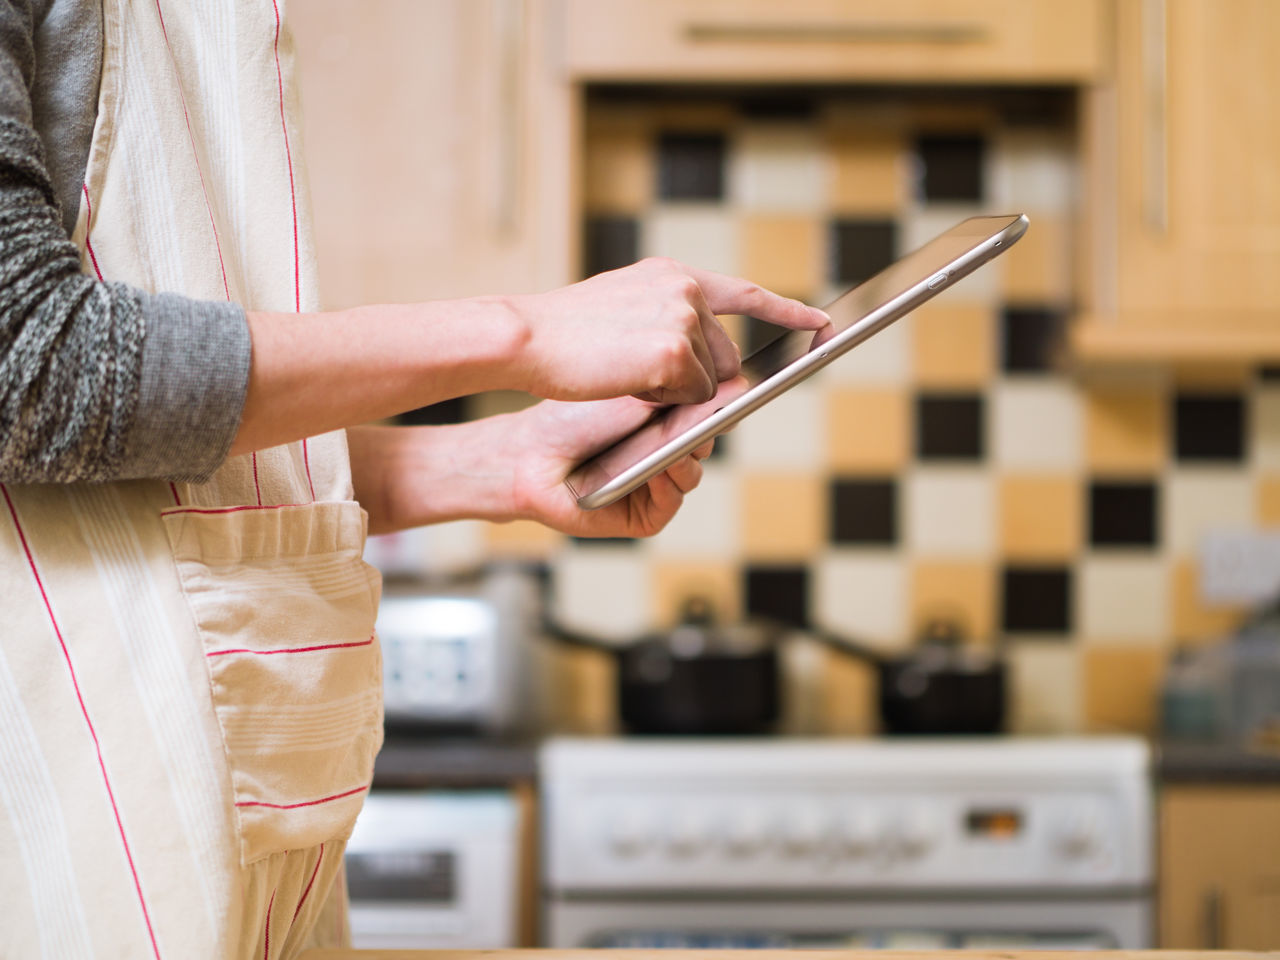 man using tablet in the kitchen Adult Adults Only Apron Close-up Communication Connection Day Digital Tablet Focus On Foreground Holding Human Body Part Human Hand Indoors  Kitchen Lifestyles Man Midsection One Person People Portable Information Device Real People Technology Wireless Technology